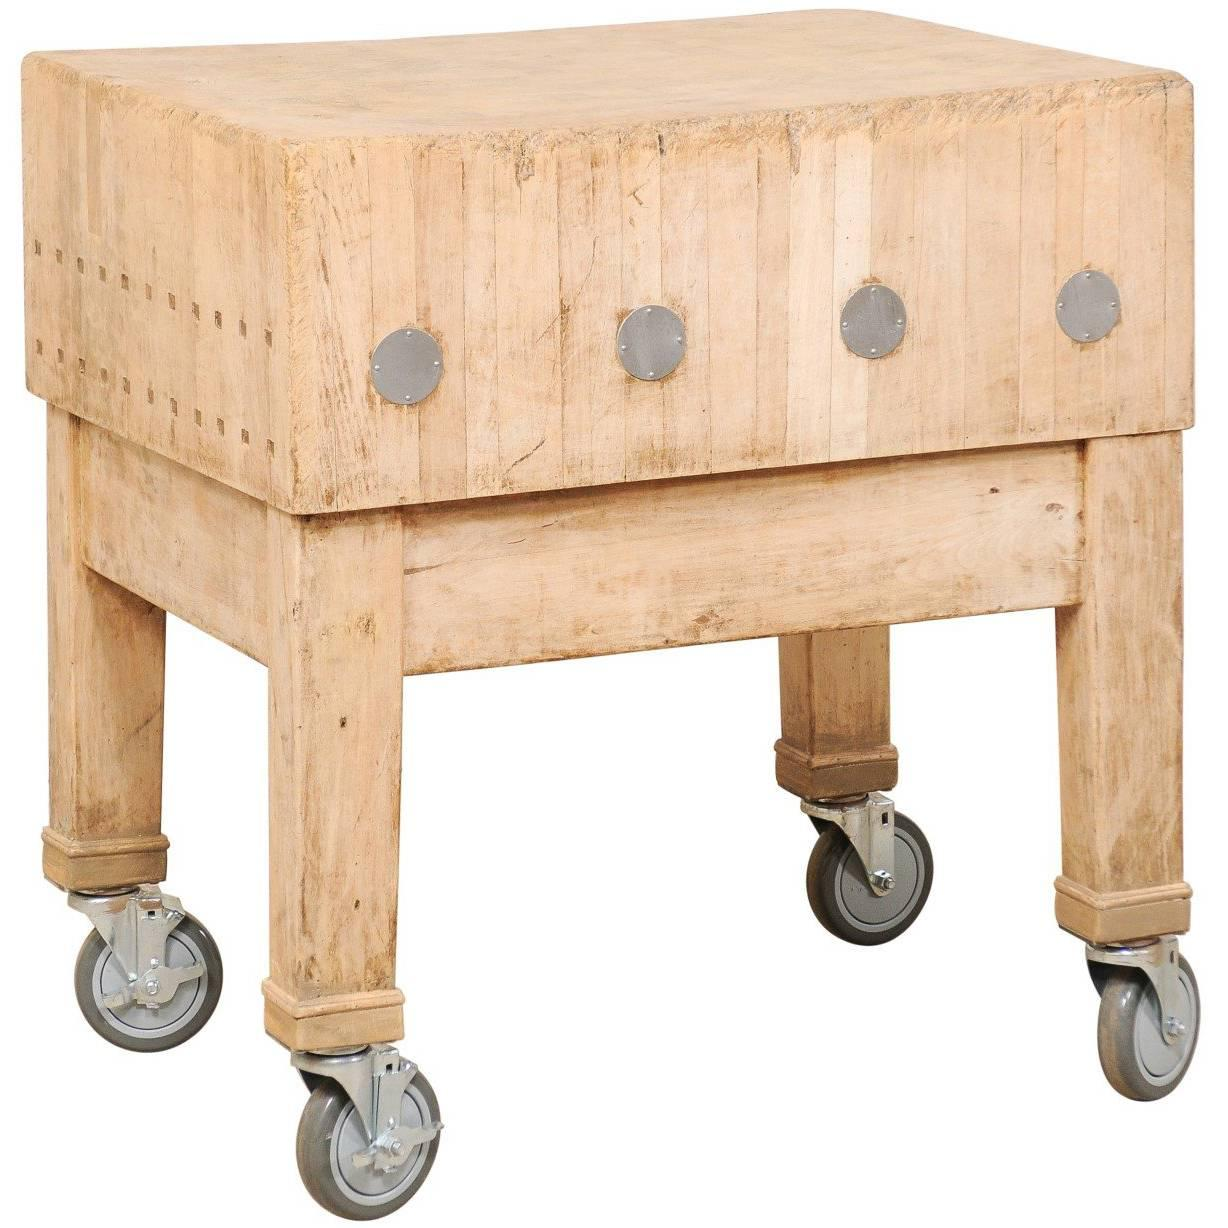 Swedish Vintage Butcher Block Bleached Wood Table With Squared Shape On  Wheels For Sale